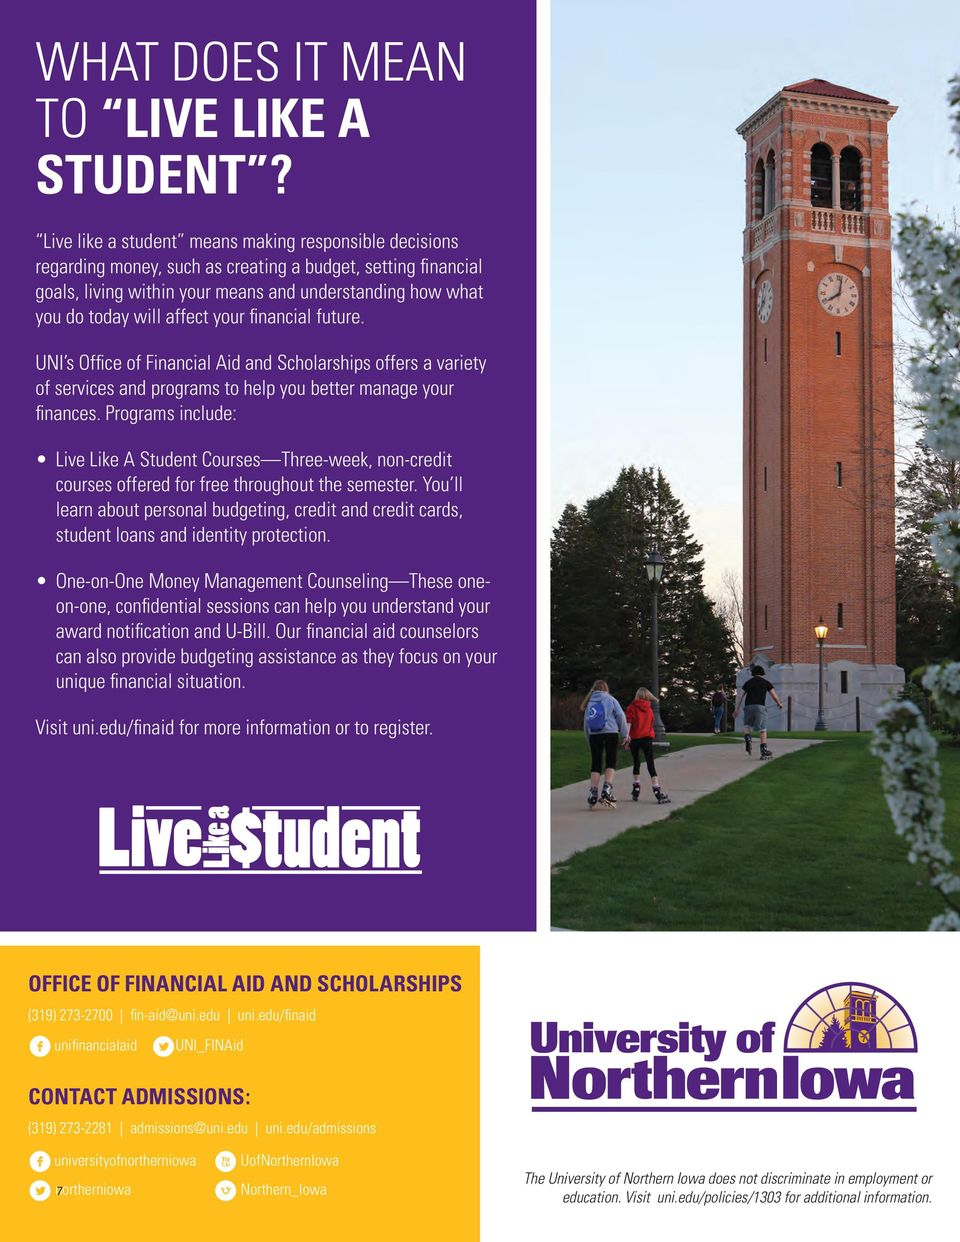 affect your financial future. UNI s Office of Financial Aid and Scholarships offers a variety of services and programs to help you better manage your finances.